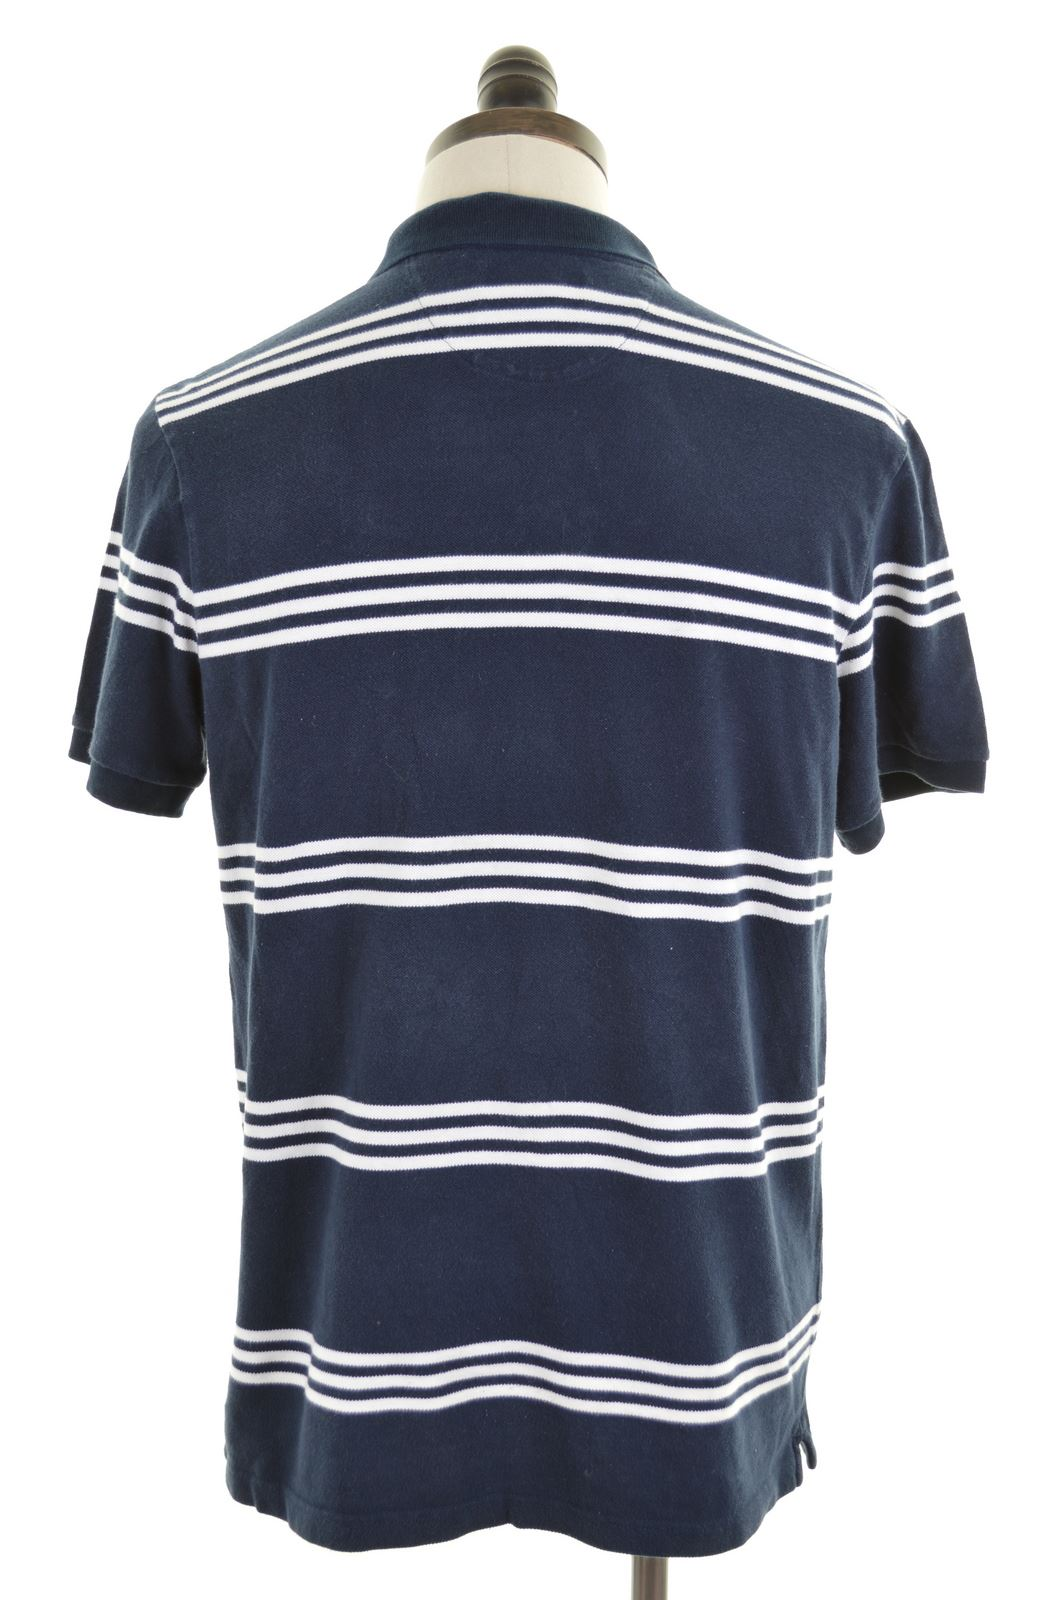 CHAPS Mens Polo Shirt Large Navy Blue Stripes Cotton Slim Fit  8f0bd9518